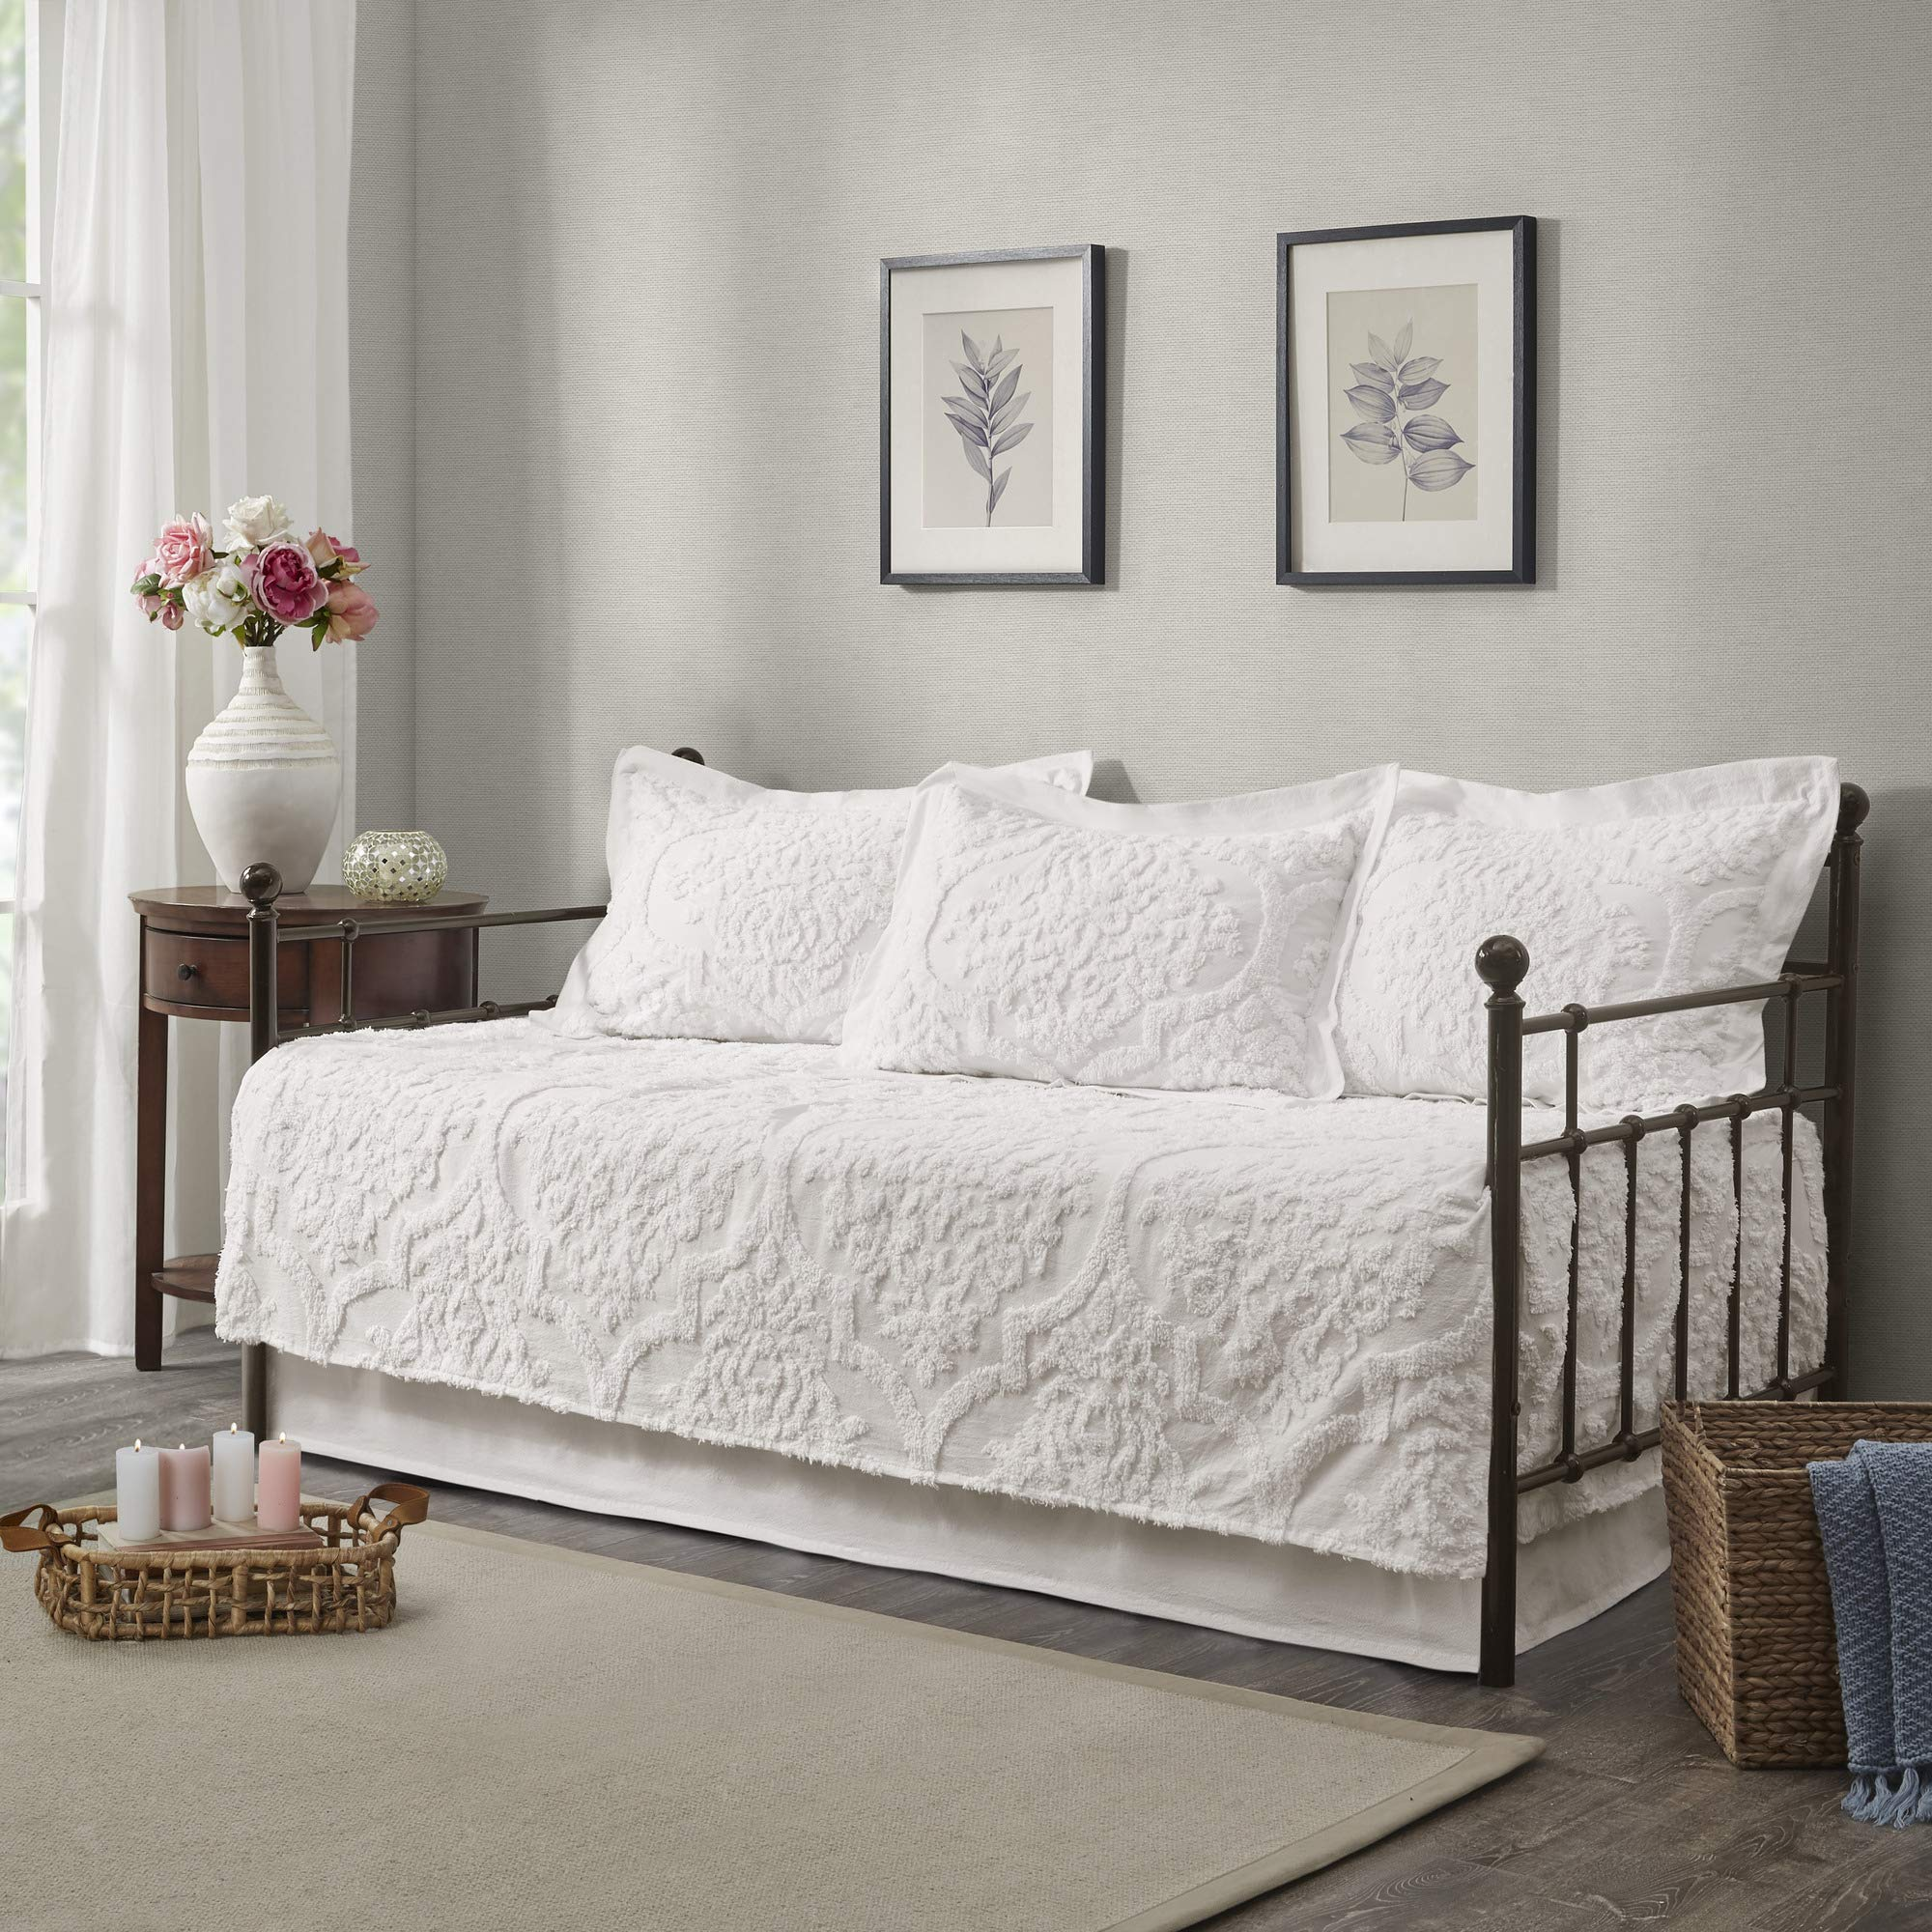 Madison Park Viola 5 Piece Tufted Cotton Chenille Daybed Set, White by Madison Park